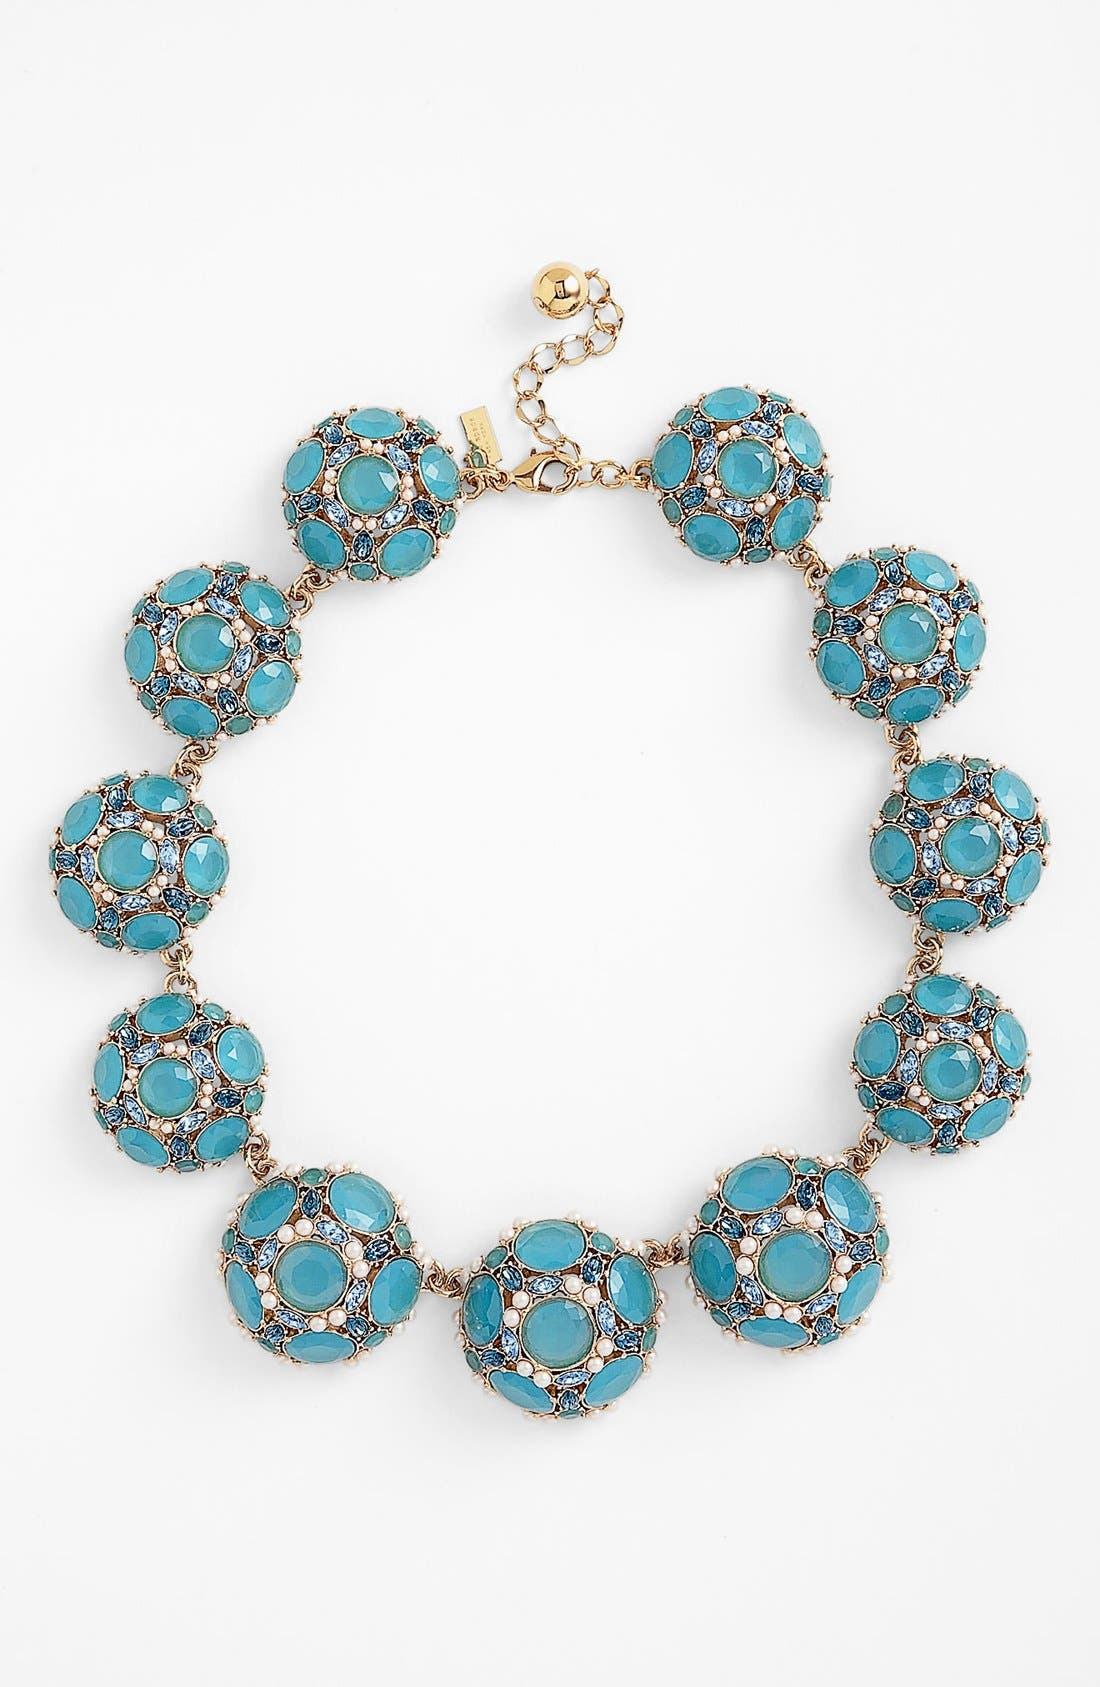 Alternate Image 1 Selected - kate spade new york 'belle fleur' collar necklace